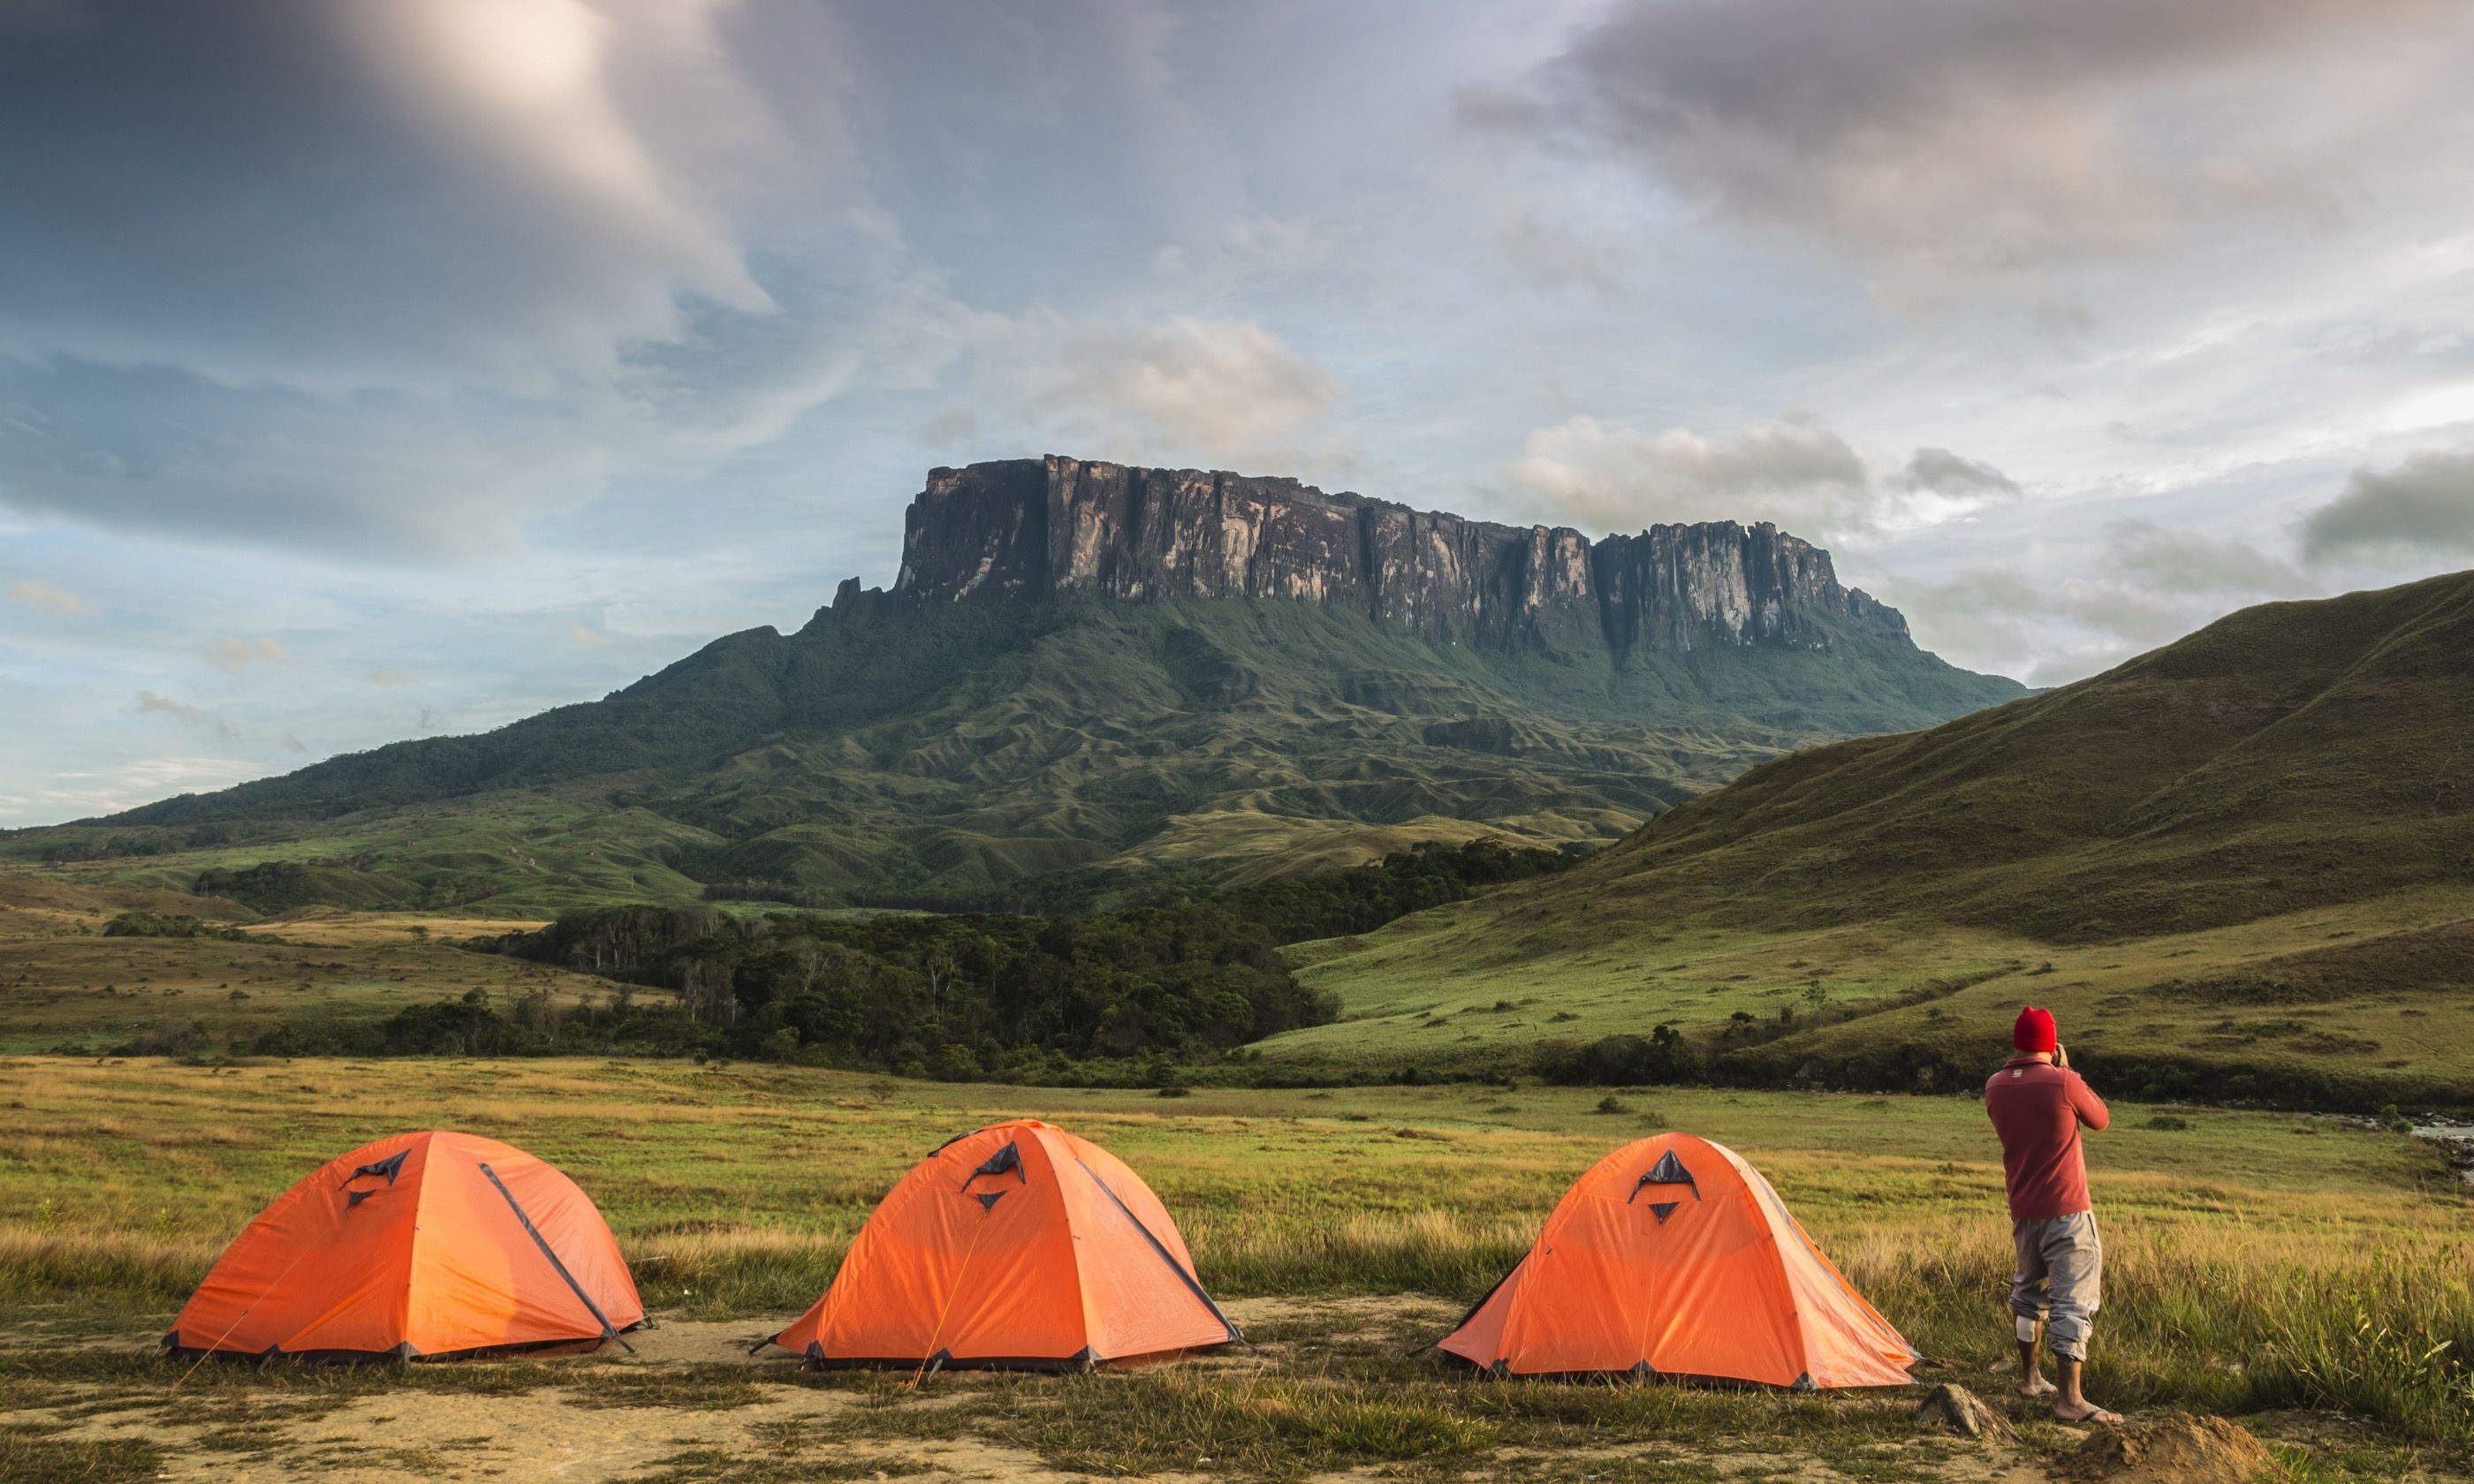 View towards Roraima (Shutterstock.com)